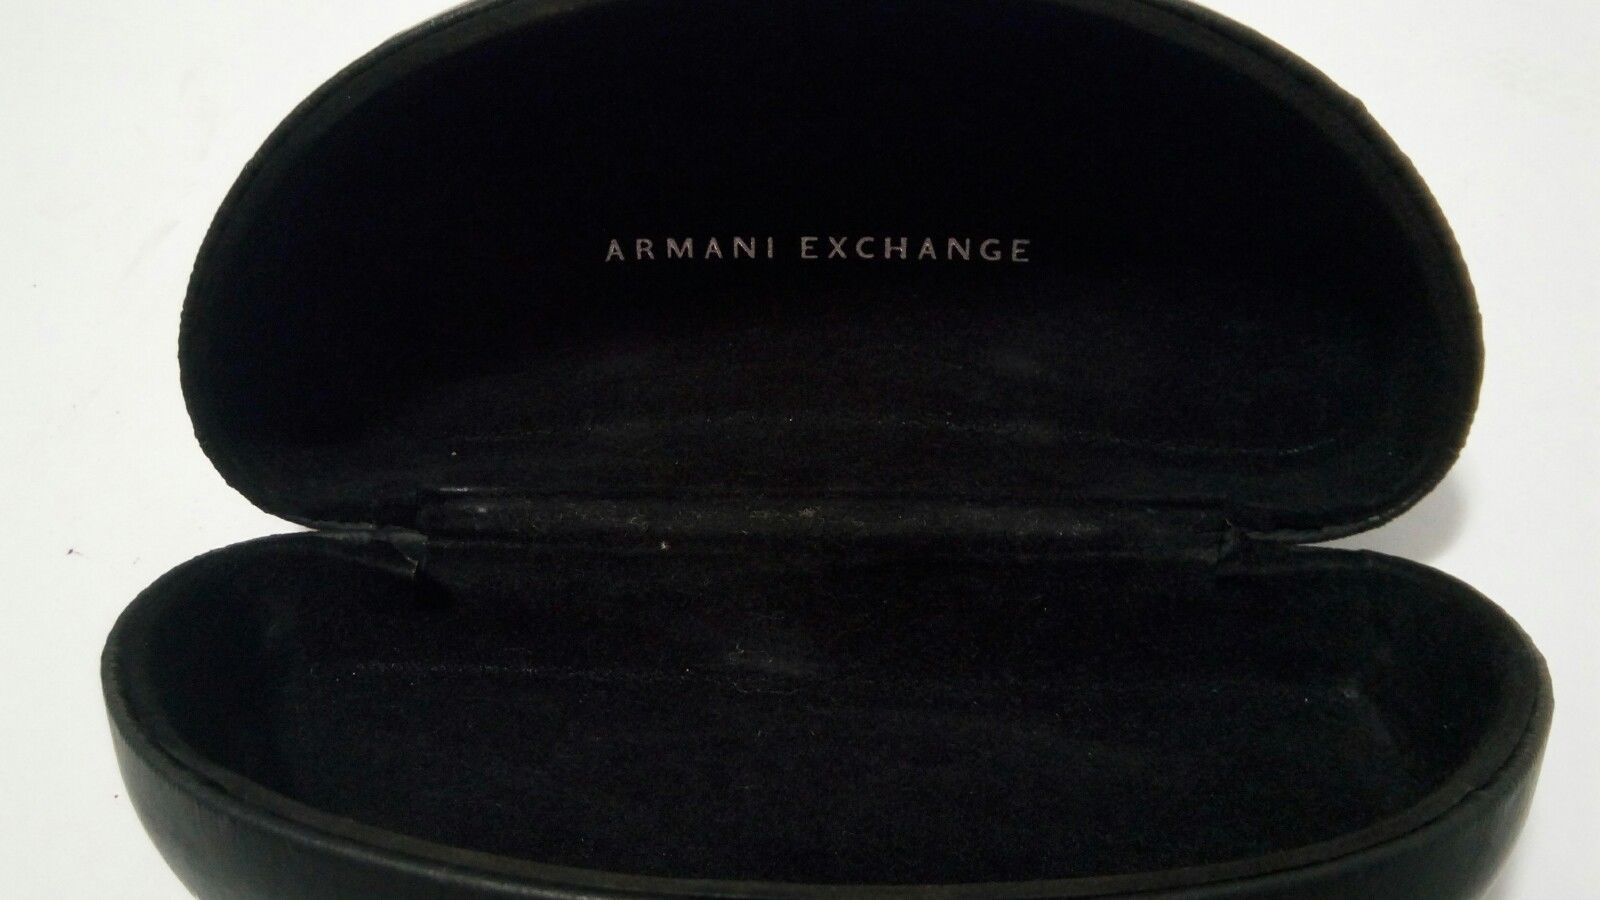 AX Armani Exchange Authentic Hard Glasses Case-Black image 5